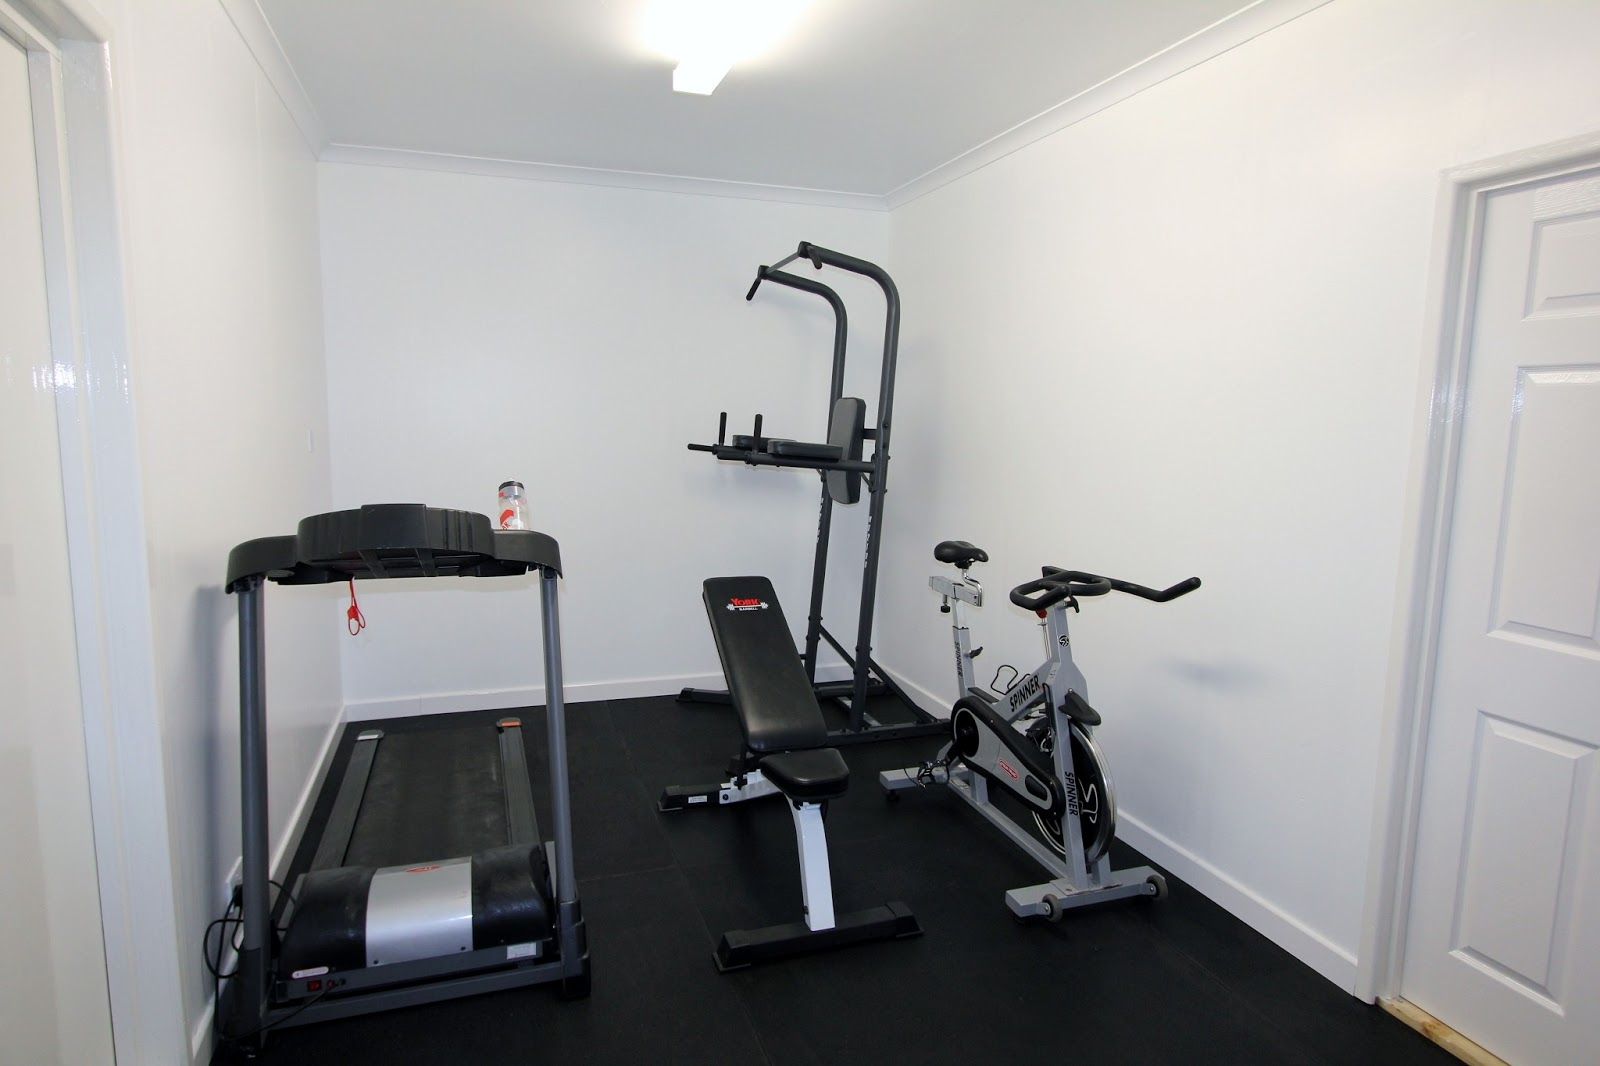 My new garage gym